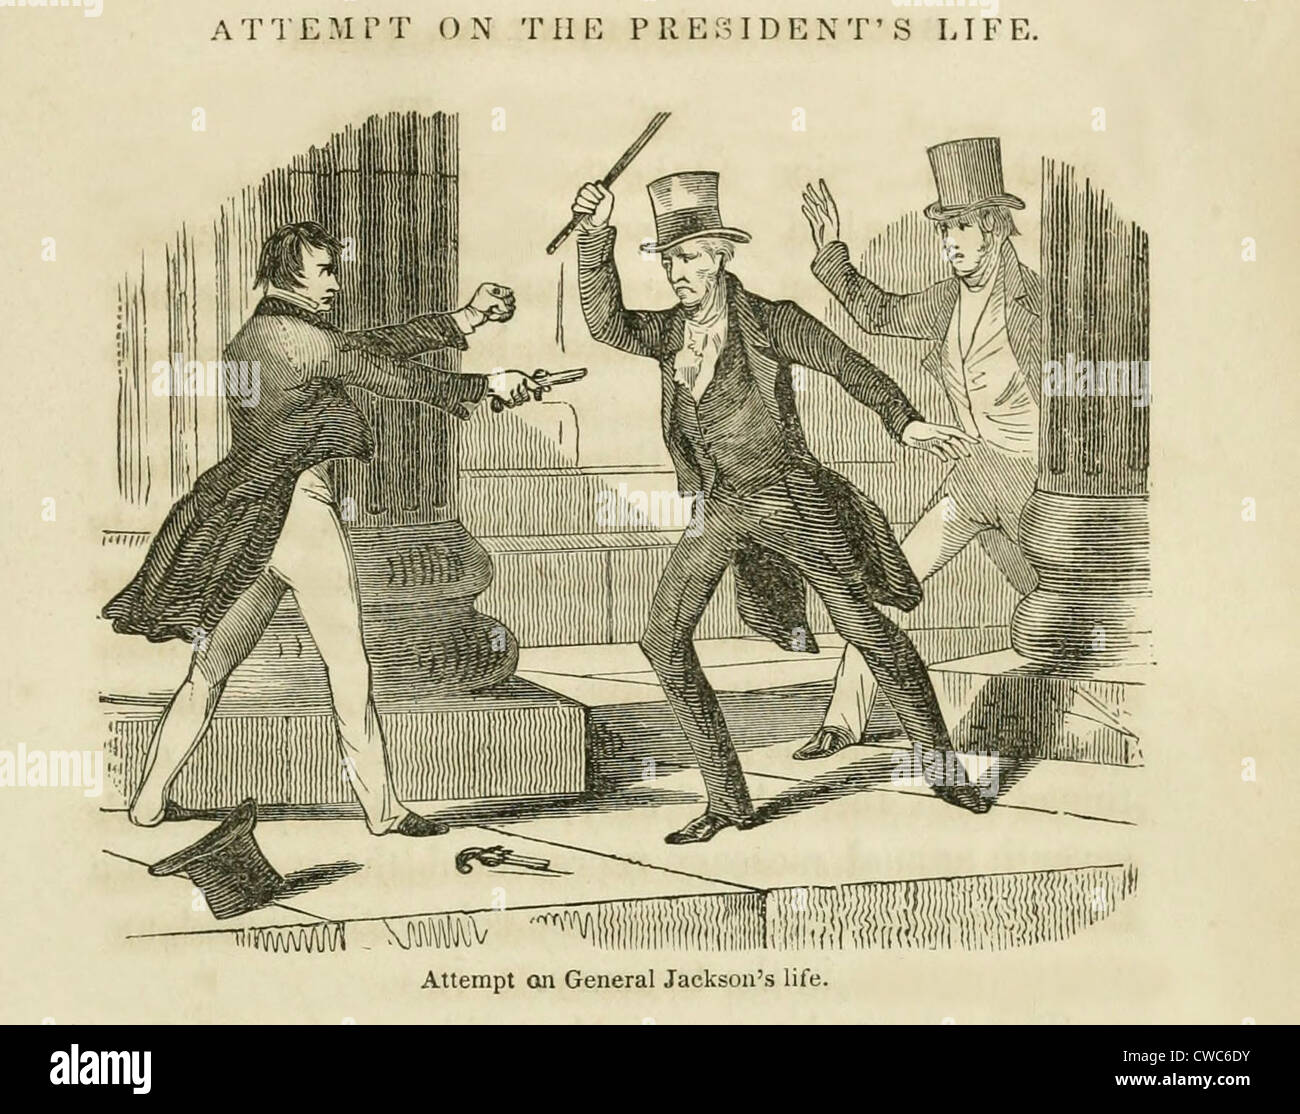 assassination attempt on president andrew jackson on jan 30 1835 richard lawrence an unemployed housepainter from england